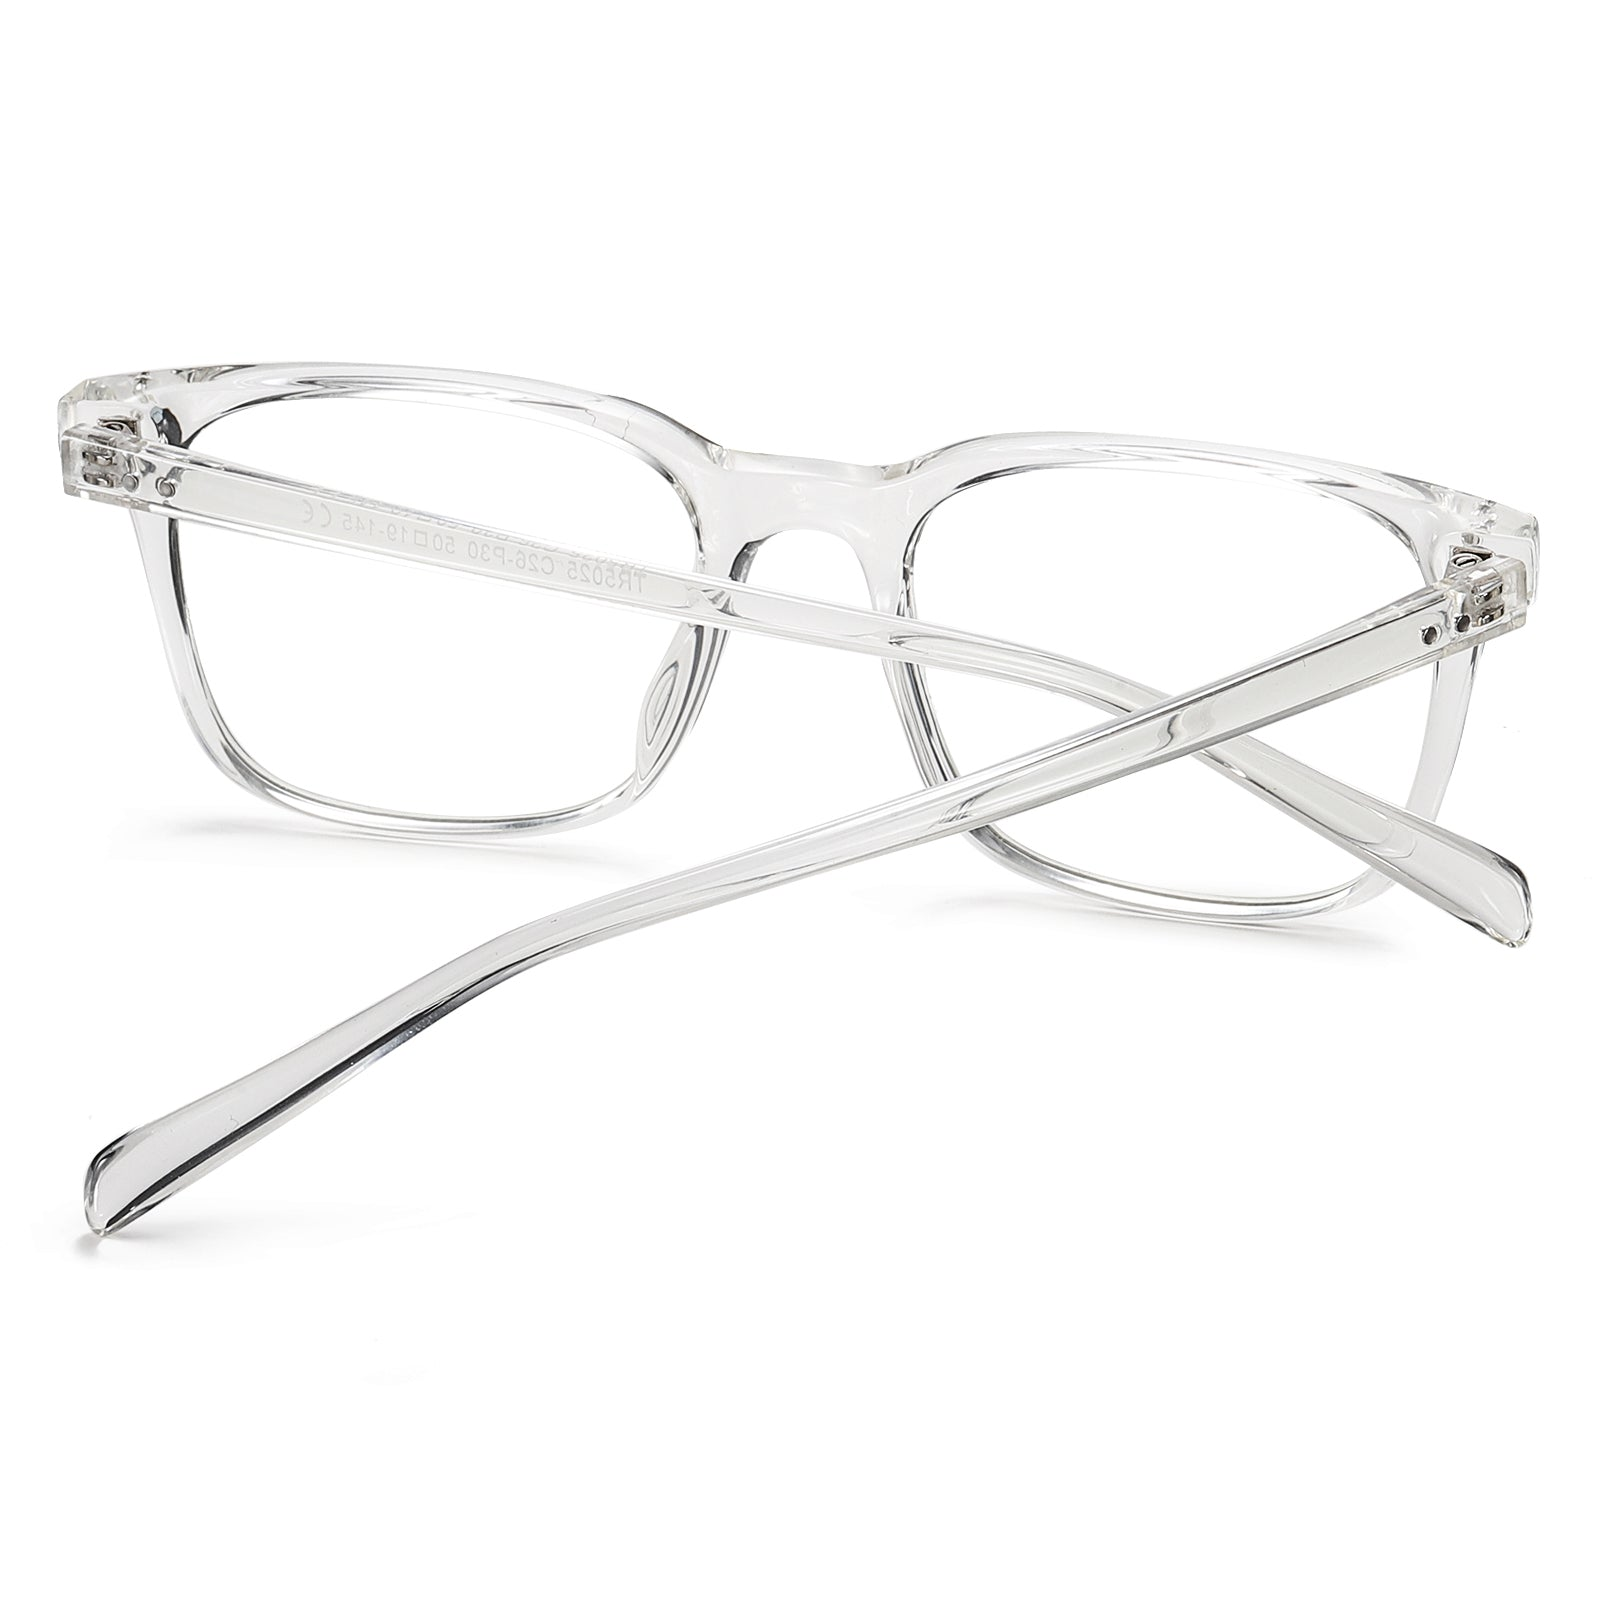 photochromic eyeglasses, clear frames, transparent temple arms